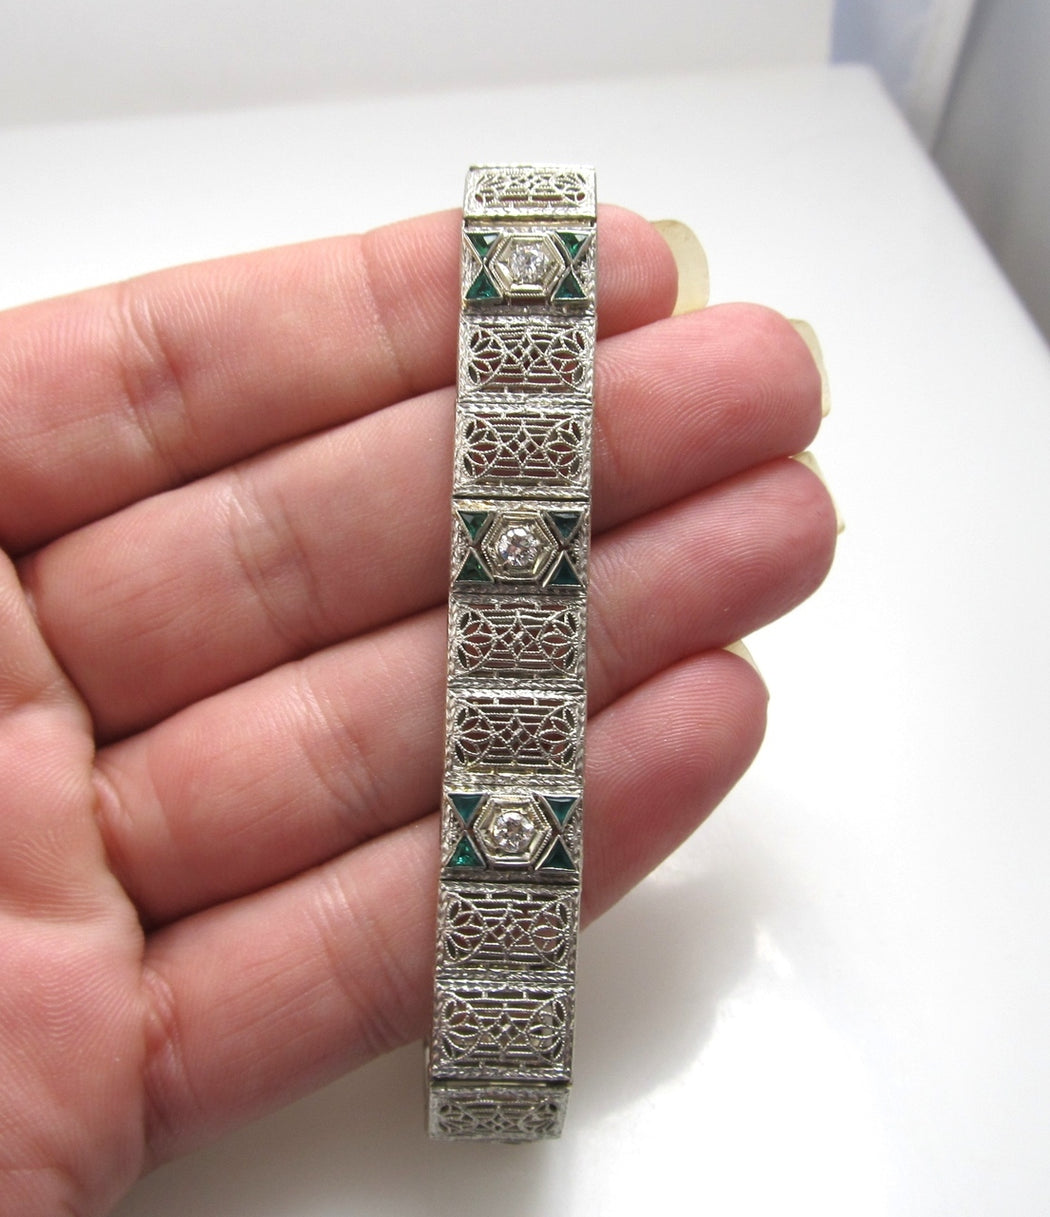 Platinum 14k Gold Filigree Bracelet With Emeralds And .30cts In Diamonds, Circa 1920